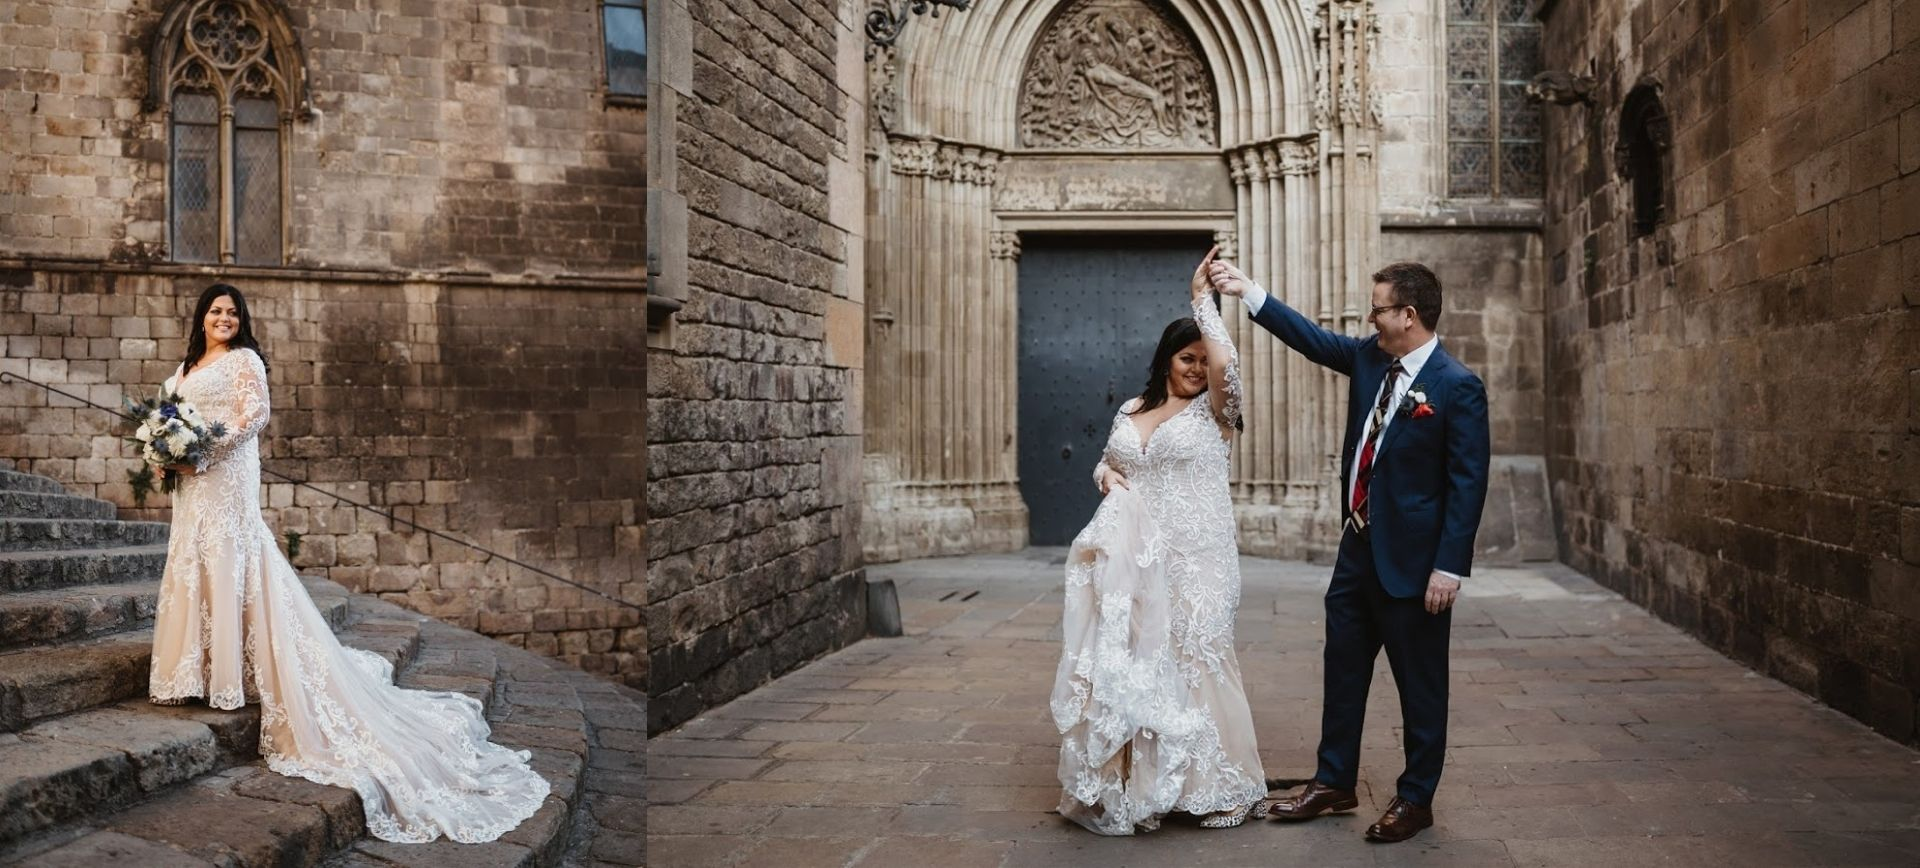 elopement wedding in barcelona - gothic quarter wedding portraits